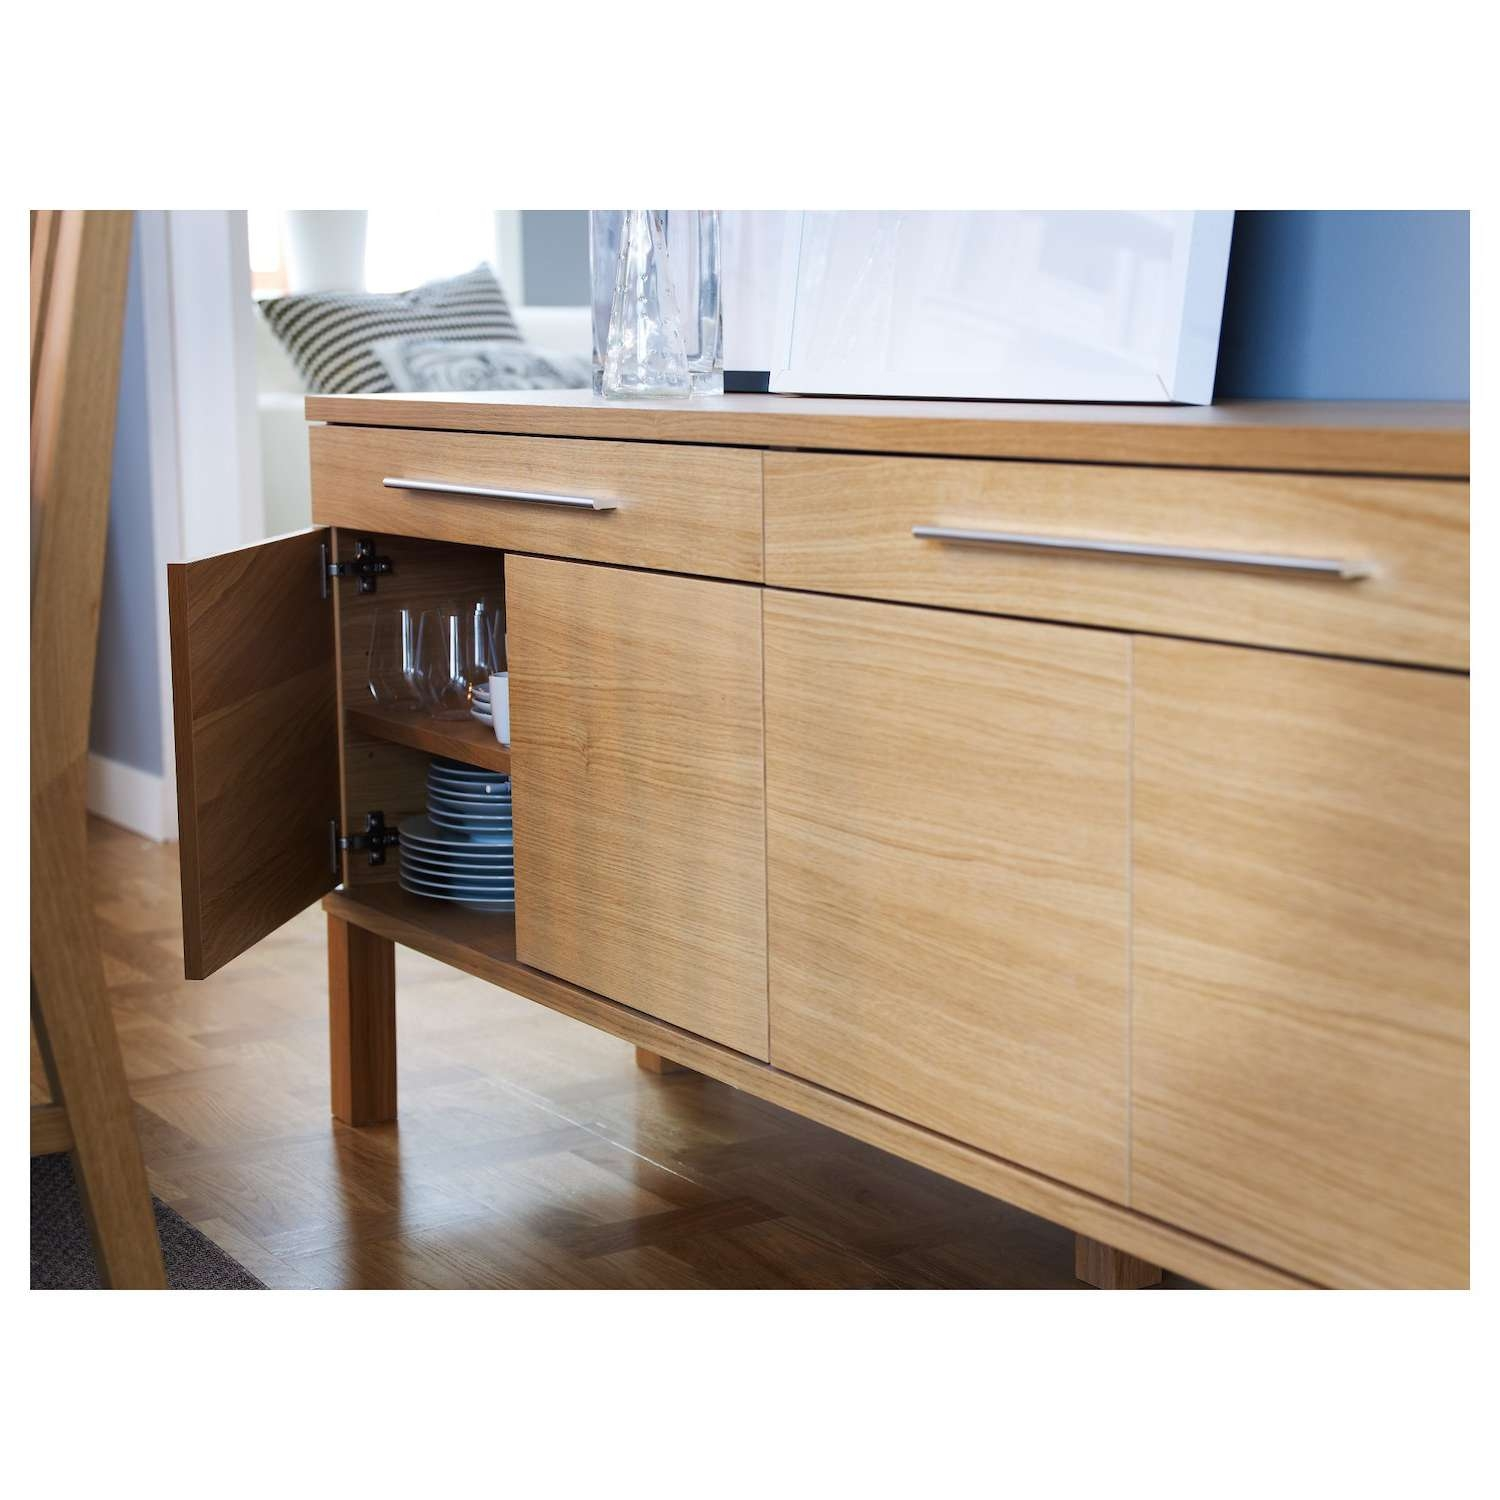 Bjursta Sideboard Oak Veneer 155x68 Cm Ikea – 28 Images – Ikea Pertaining To Ikea Bjursta Sideboards (View 10 of 20)